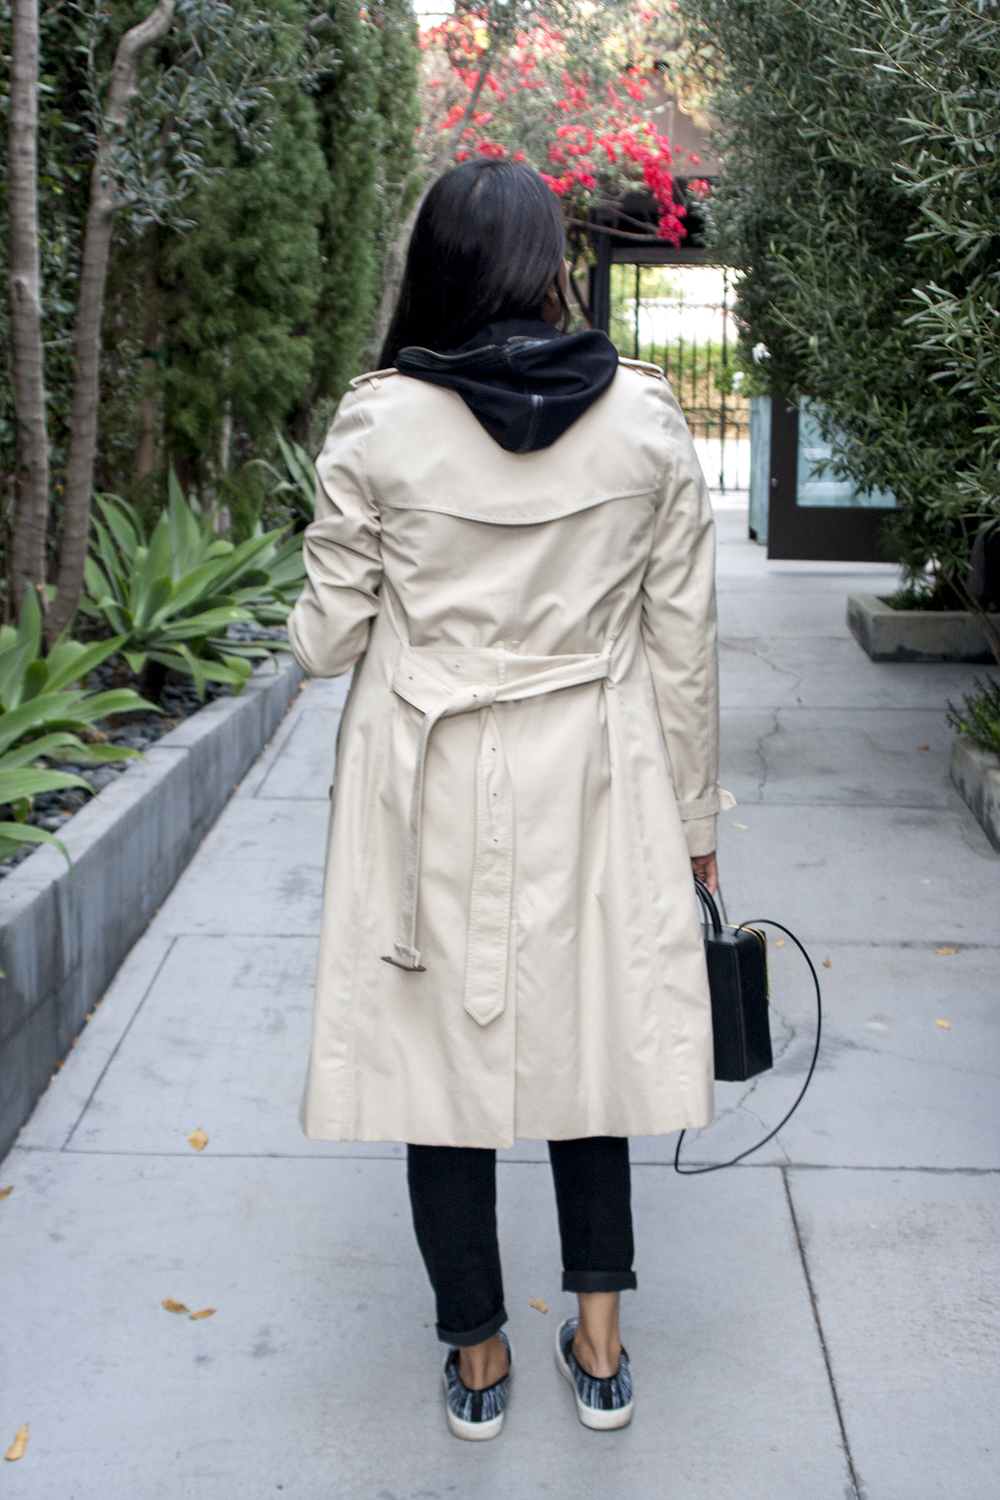 Burberry Trench Coat California Casual